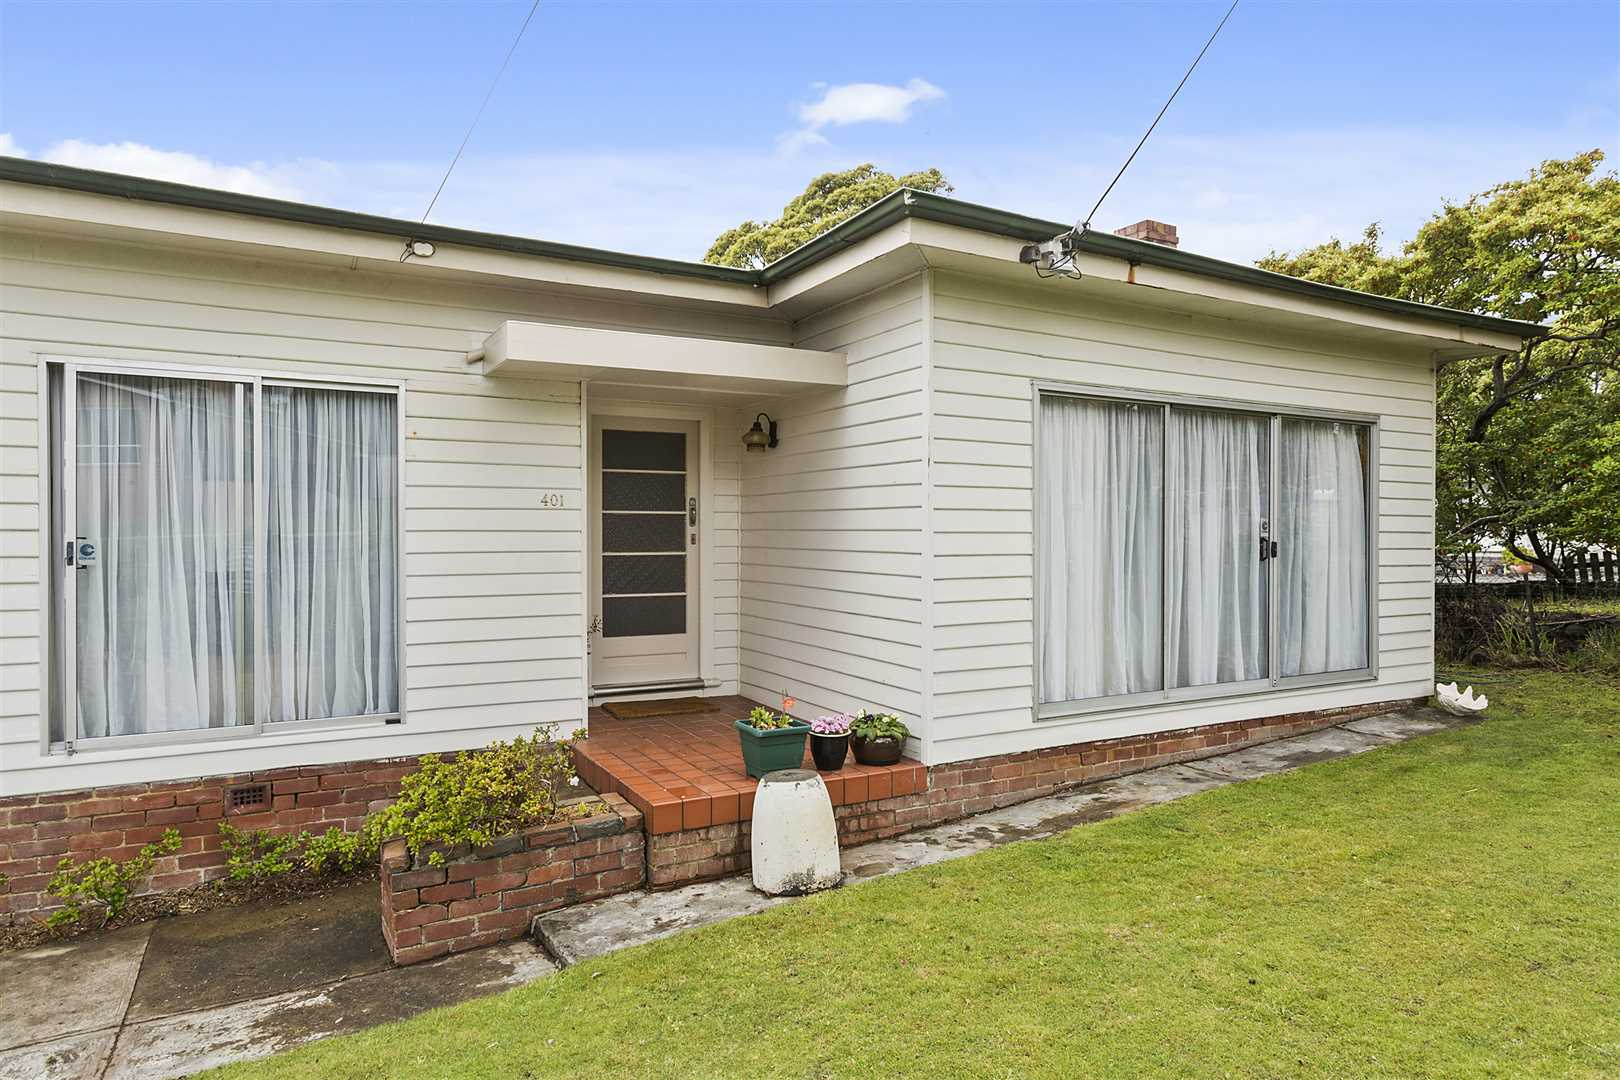 A Blank Canvas In Popular Mount Nelson!